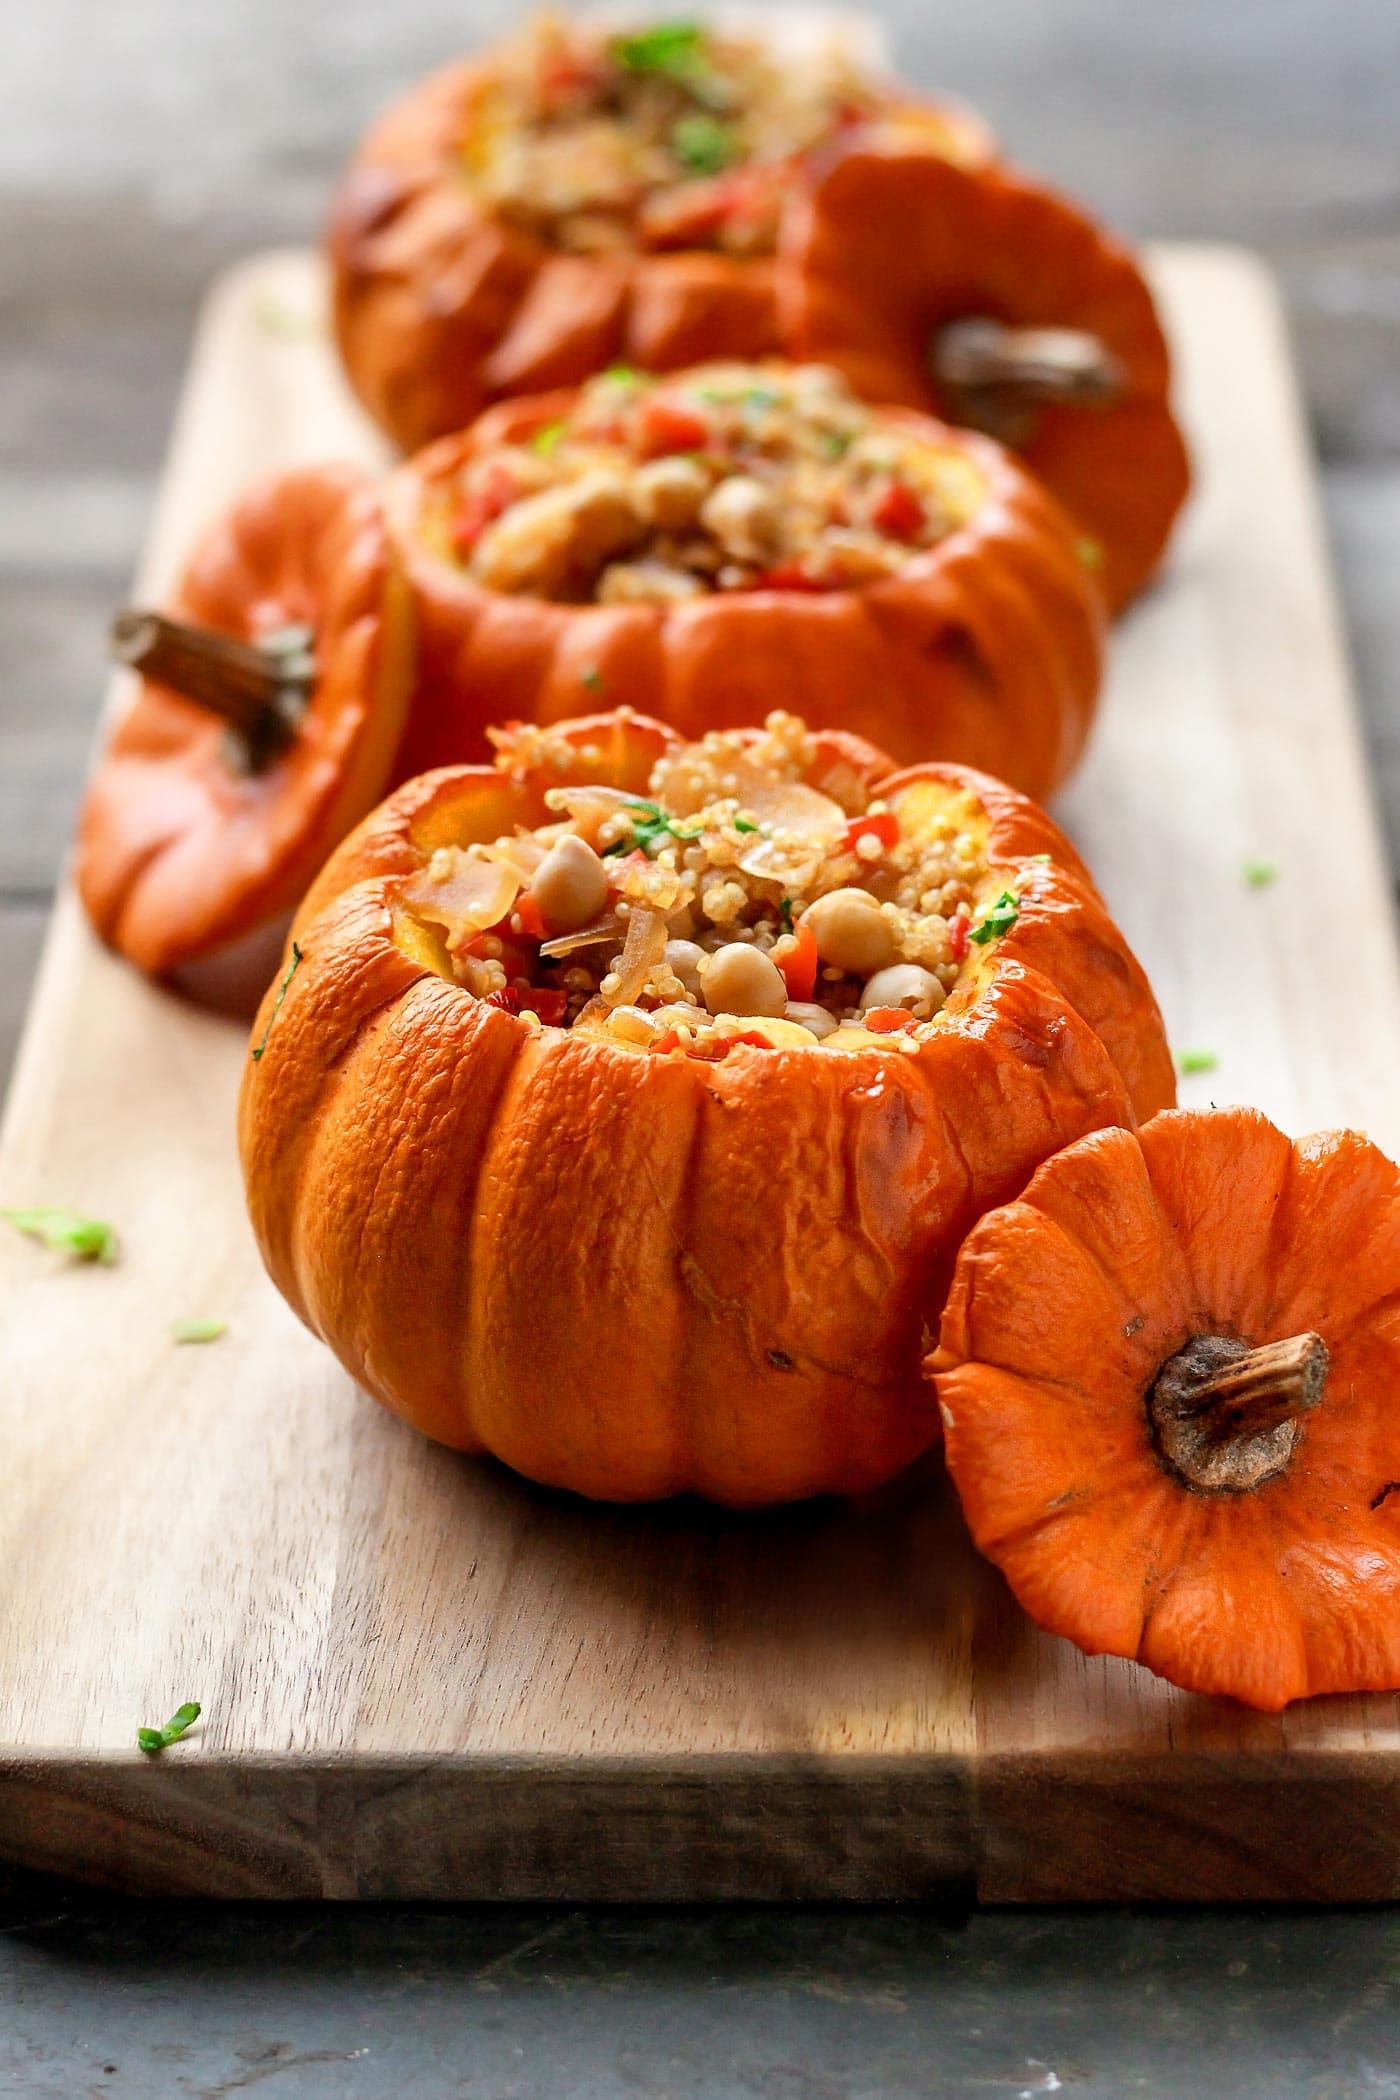 Quinoa Risotto Stuffed Pumpkins